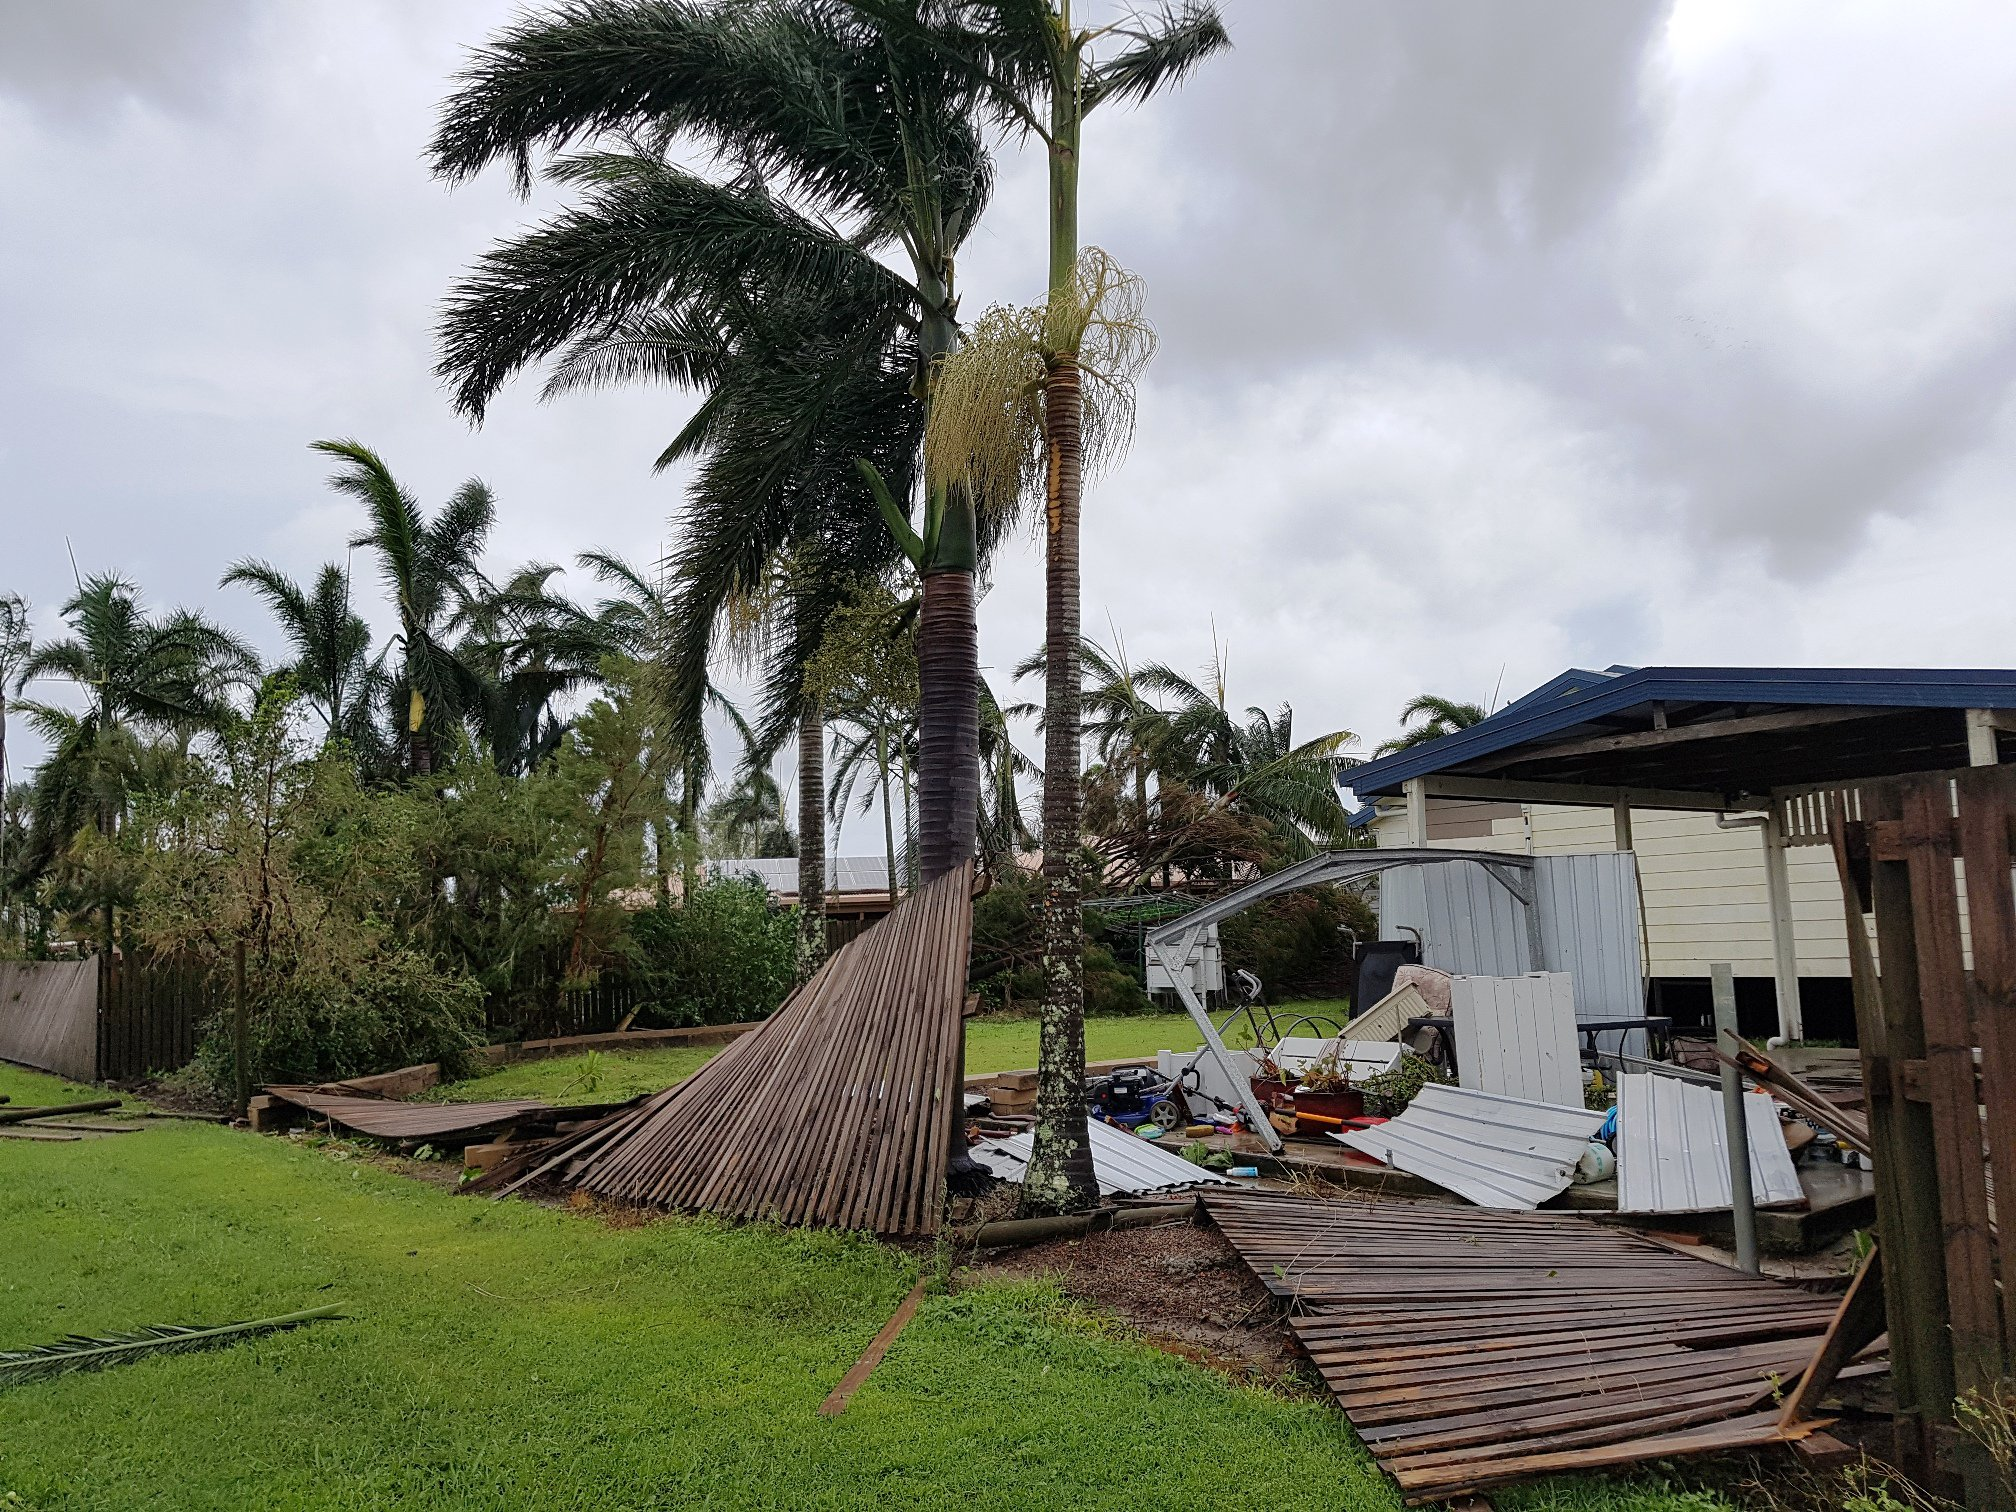 Cyclone Debbie - Can Buyers Terminate?